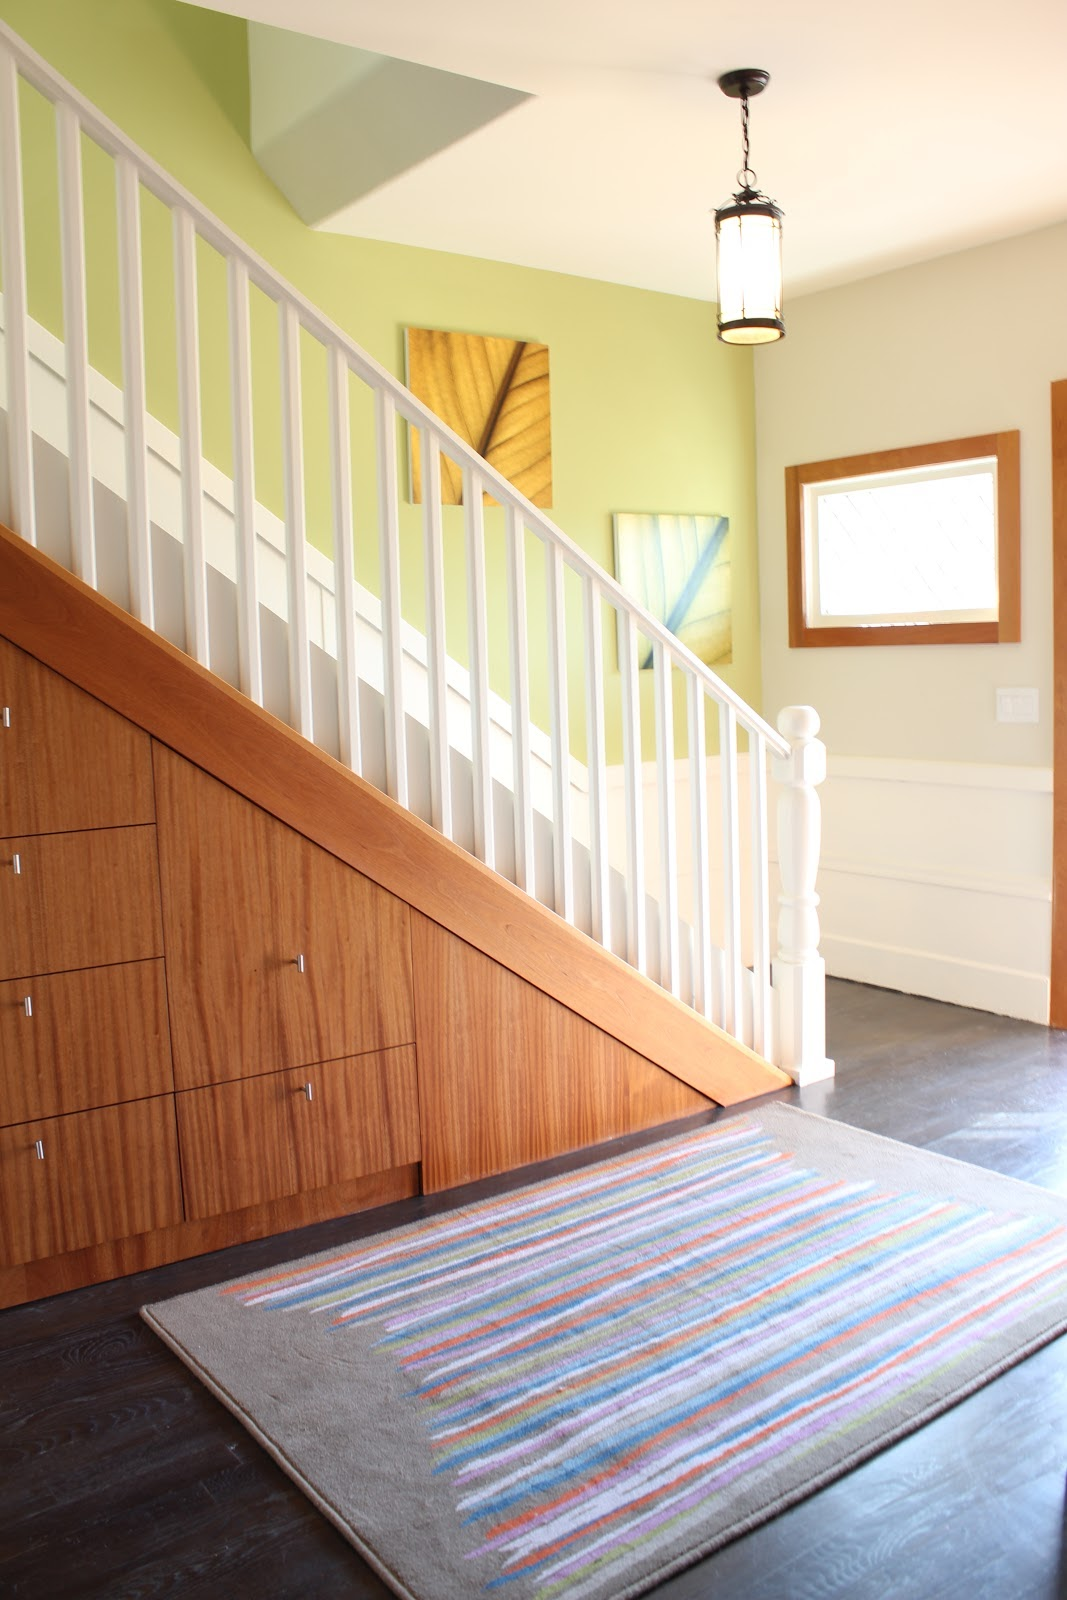 Don't want to commit to an entire accent wall? Then use one our favorite tricks -- painting the inside of a stairwell that's visible from your larger space instead!